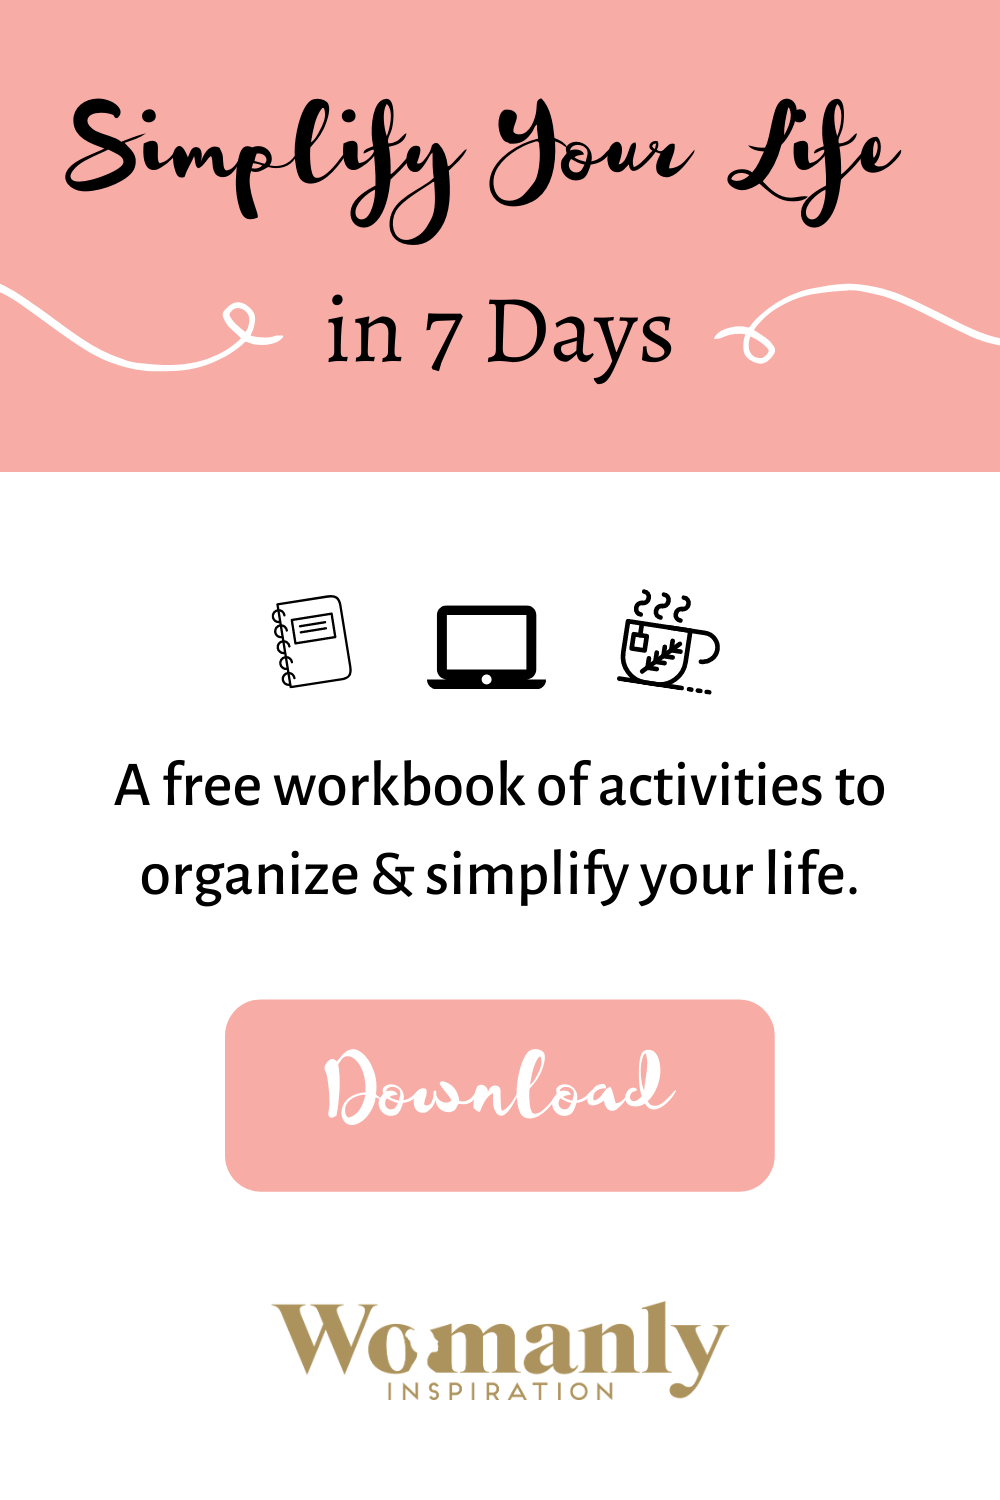 simplify your life in 7 days